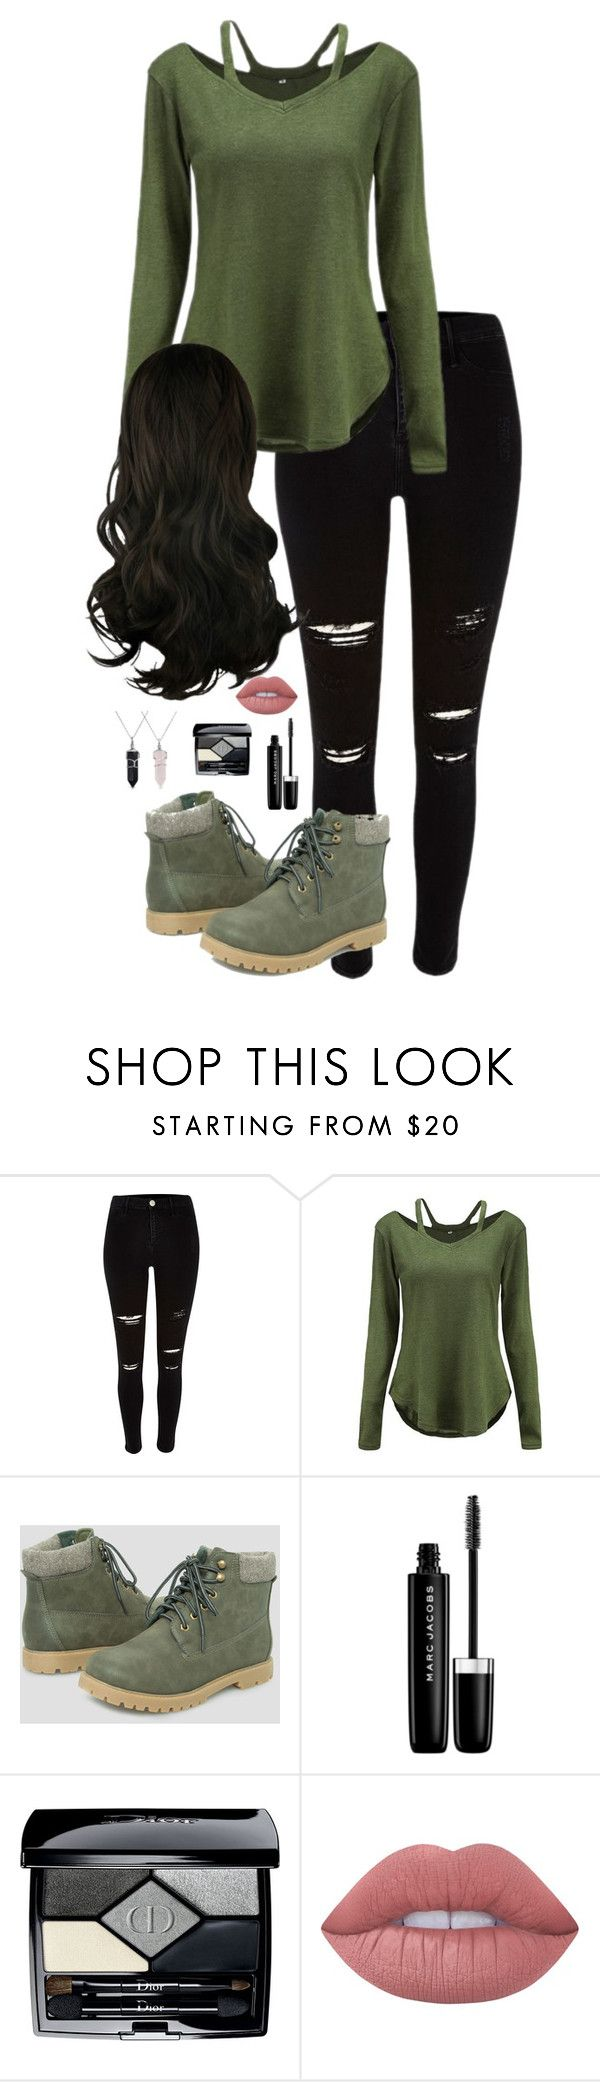 """Outfit 1 (Artemis)"" by lily-hollibaugh on Polyvore featuring River Island, Ashley Stewart, Marc Jacobs, Christian Dior, Lime Crime and Bling Jewelry"